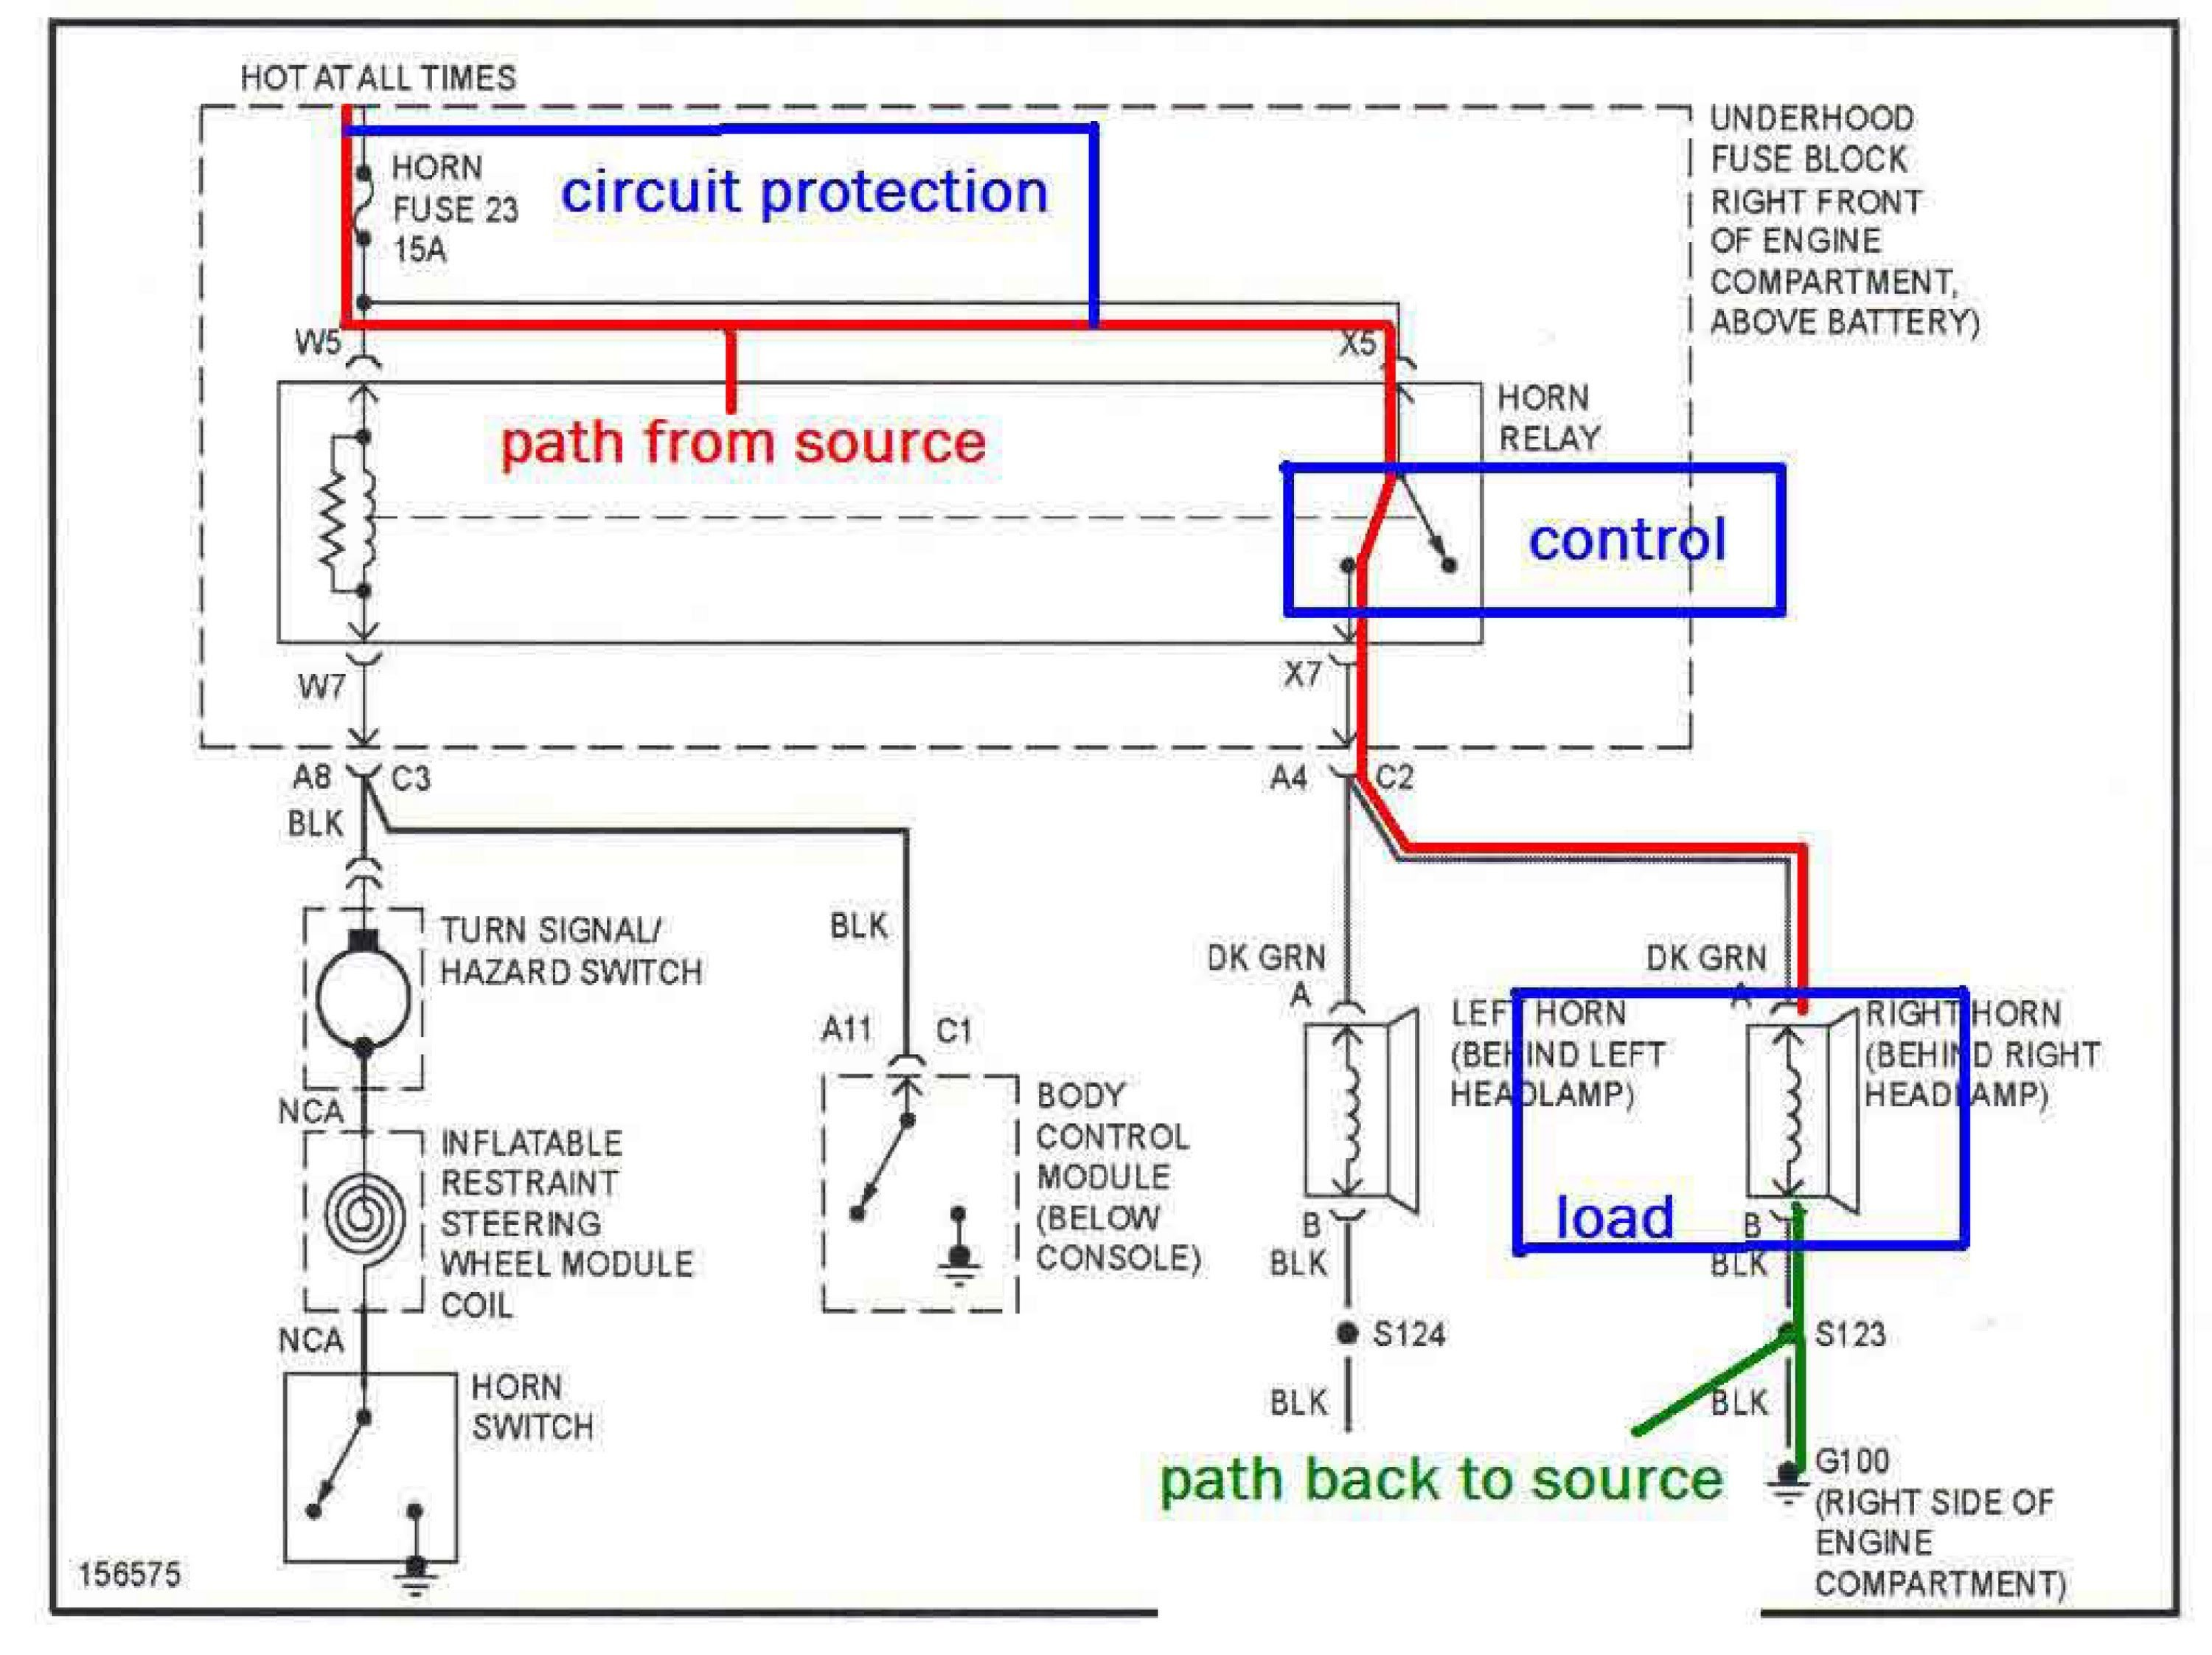 Automatic Car Wash Wiring Diagrams Library Plc Drawings As Well Diagram On Mekecom Repair Fuse Box Payphone